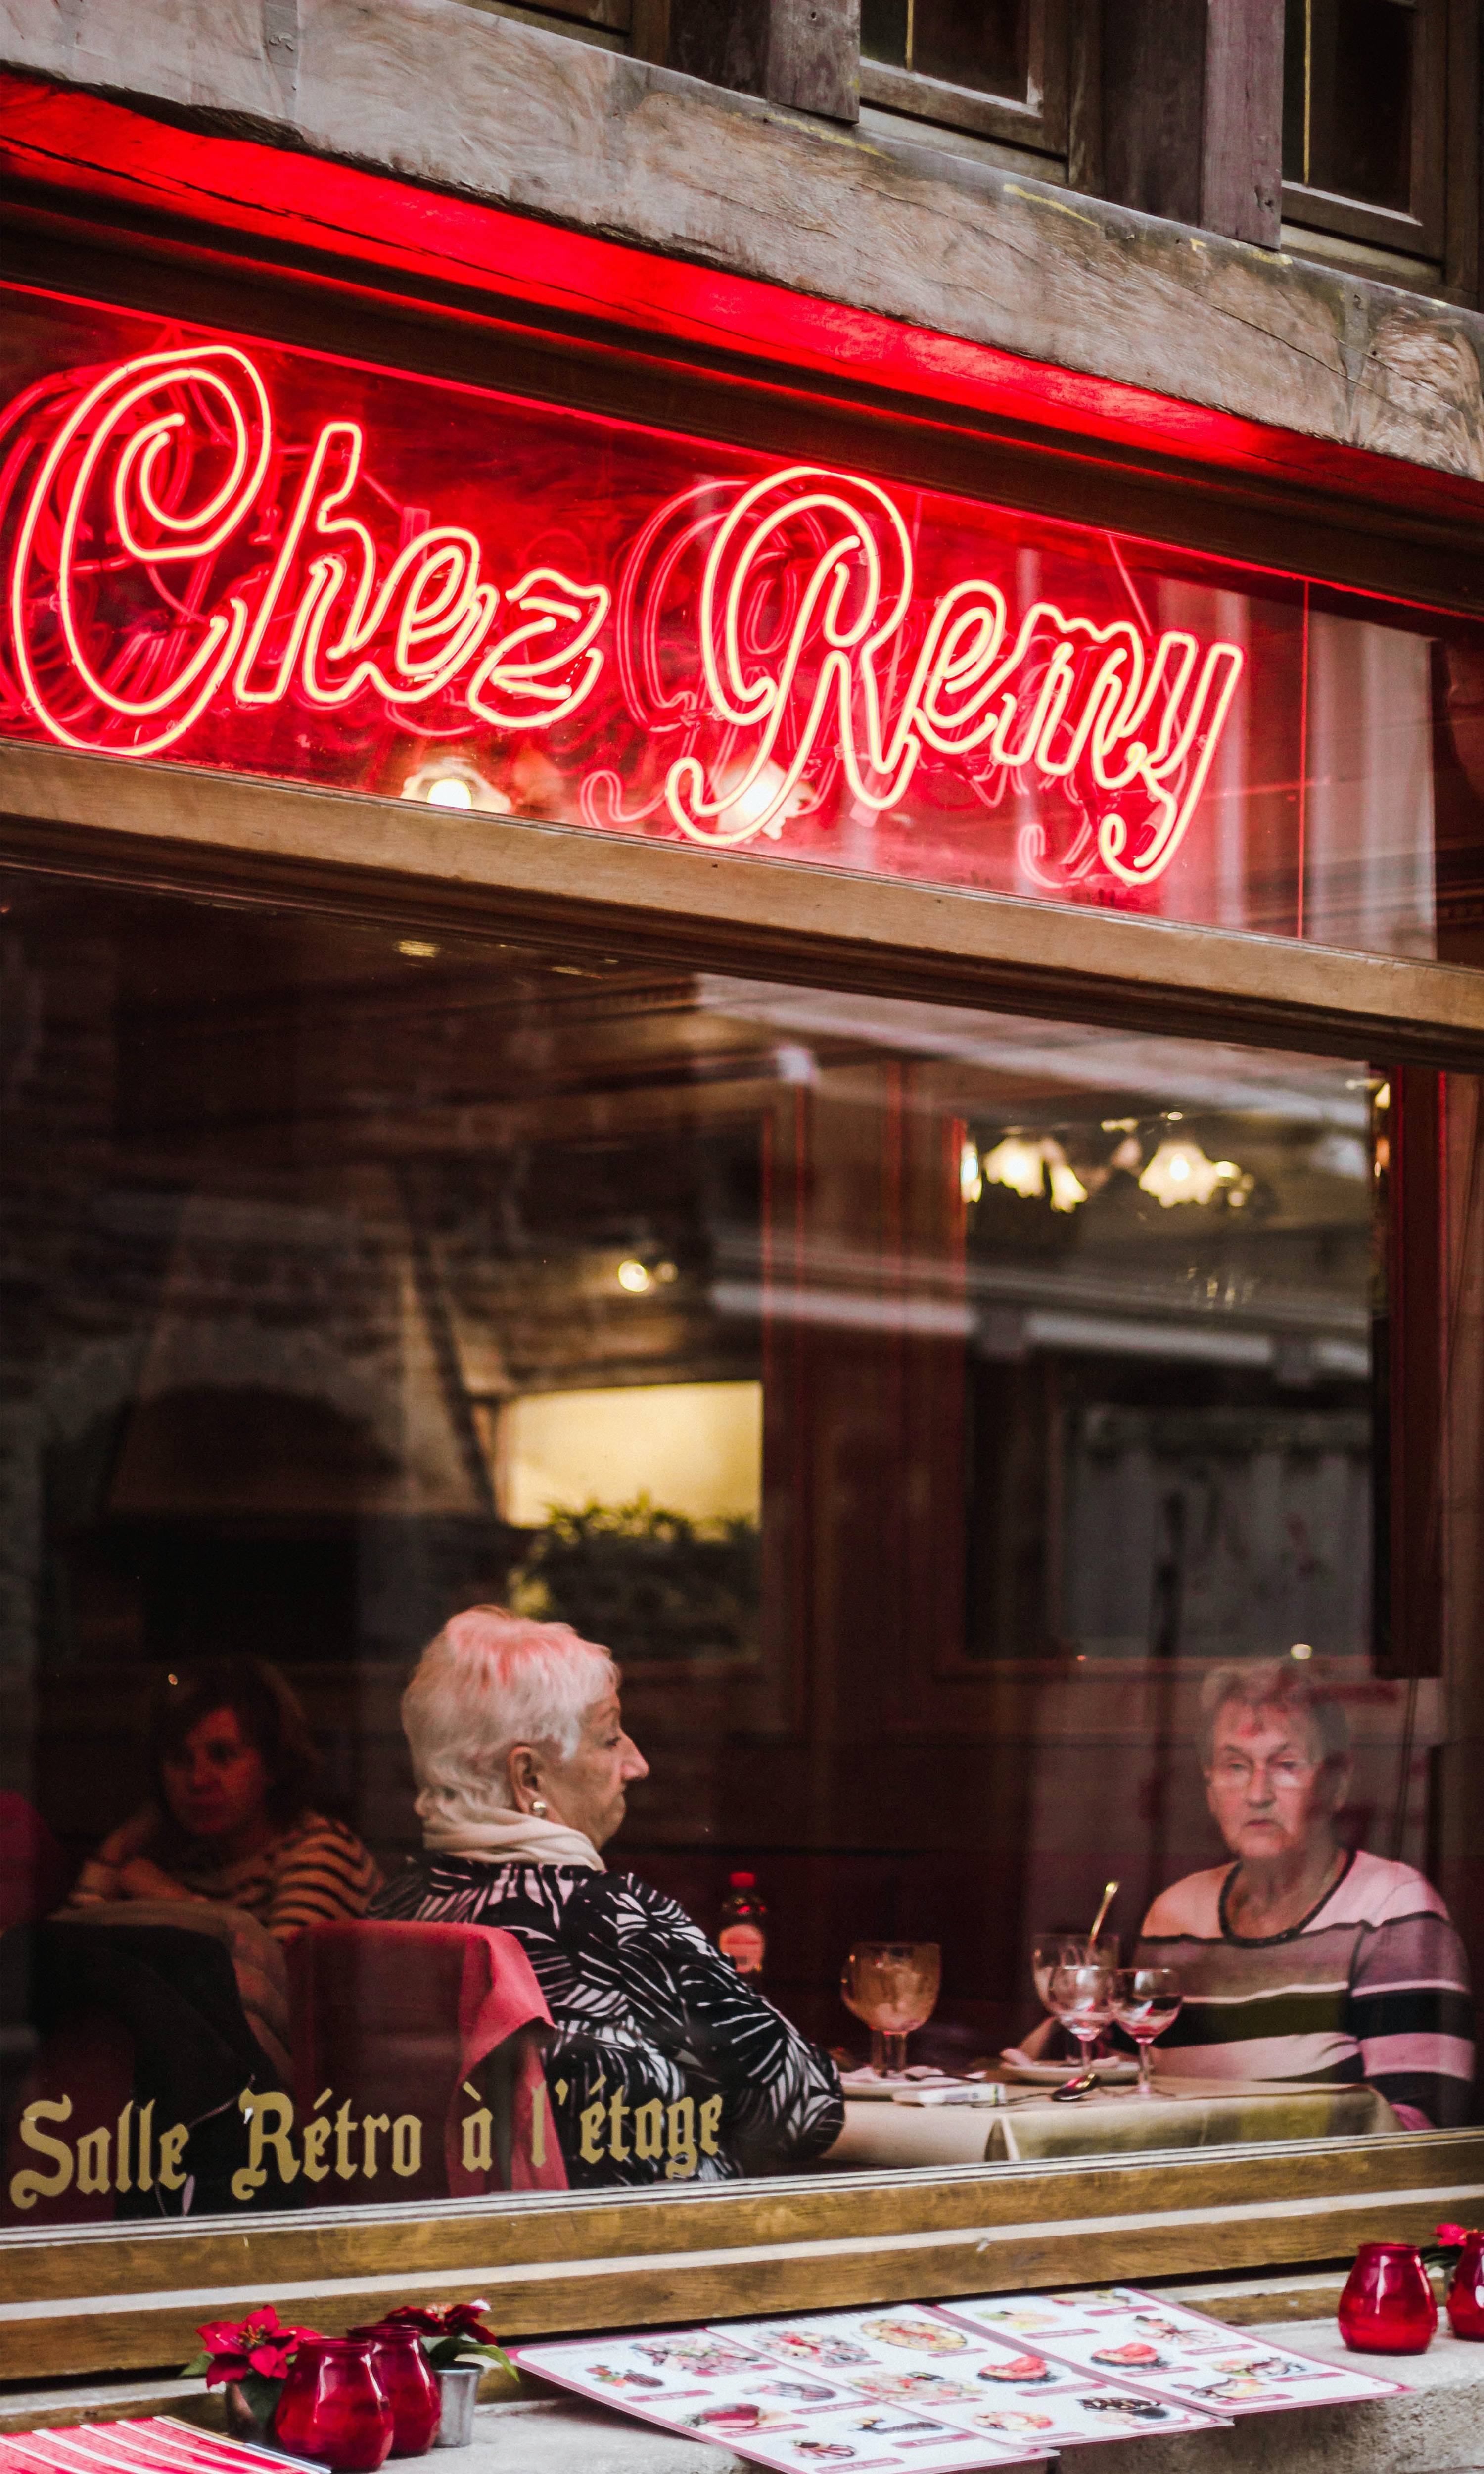 turned on Chez Remy neon signage during daytime